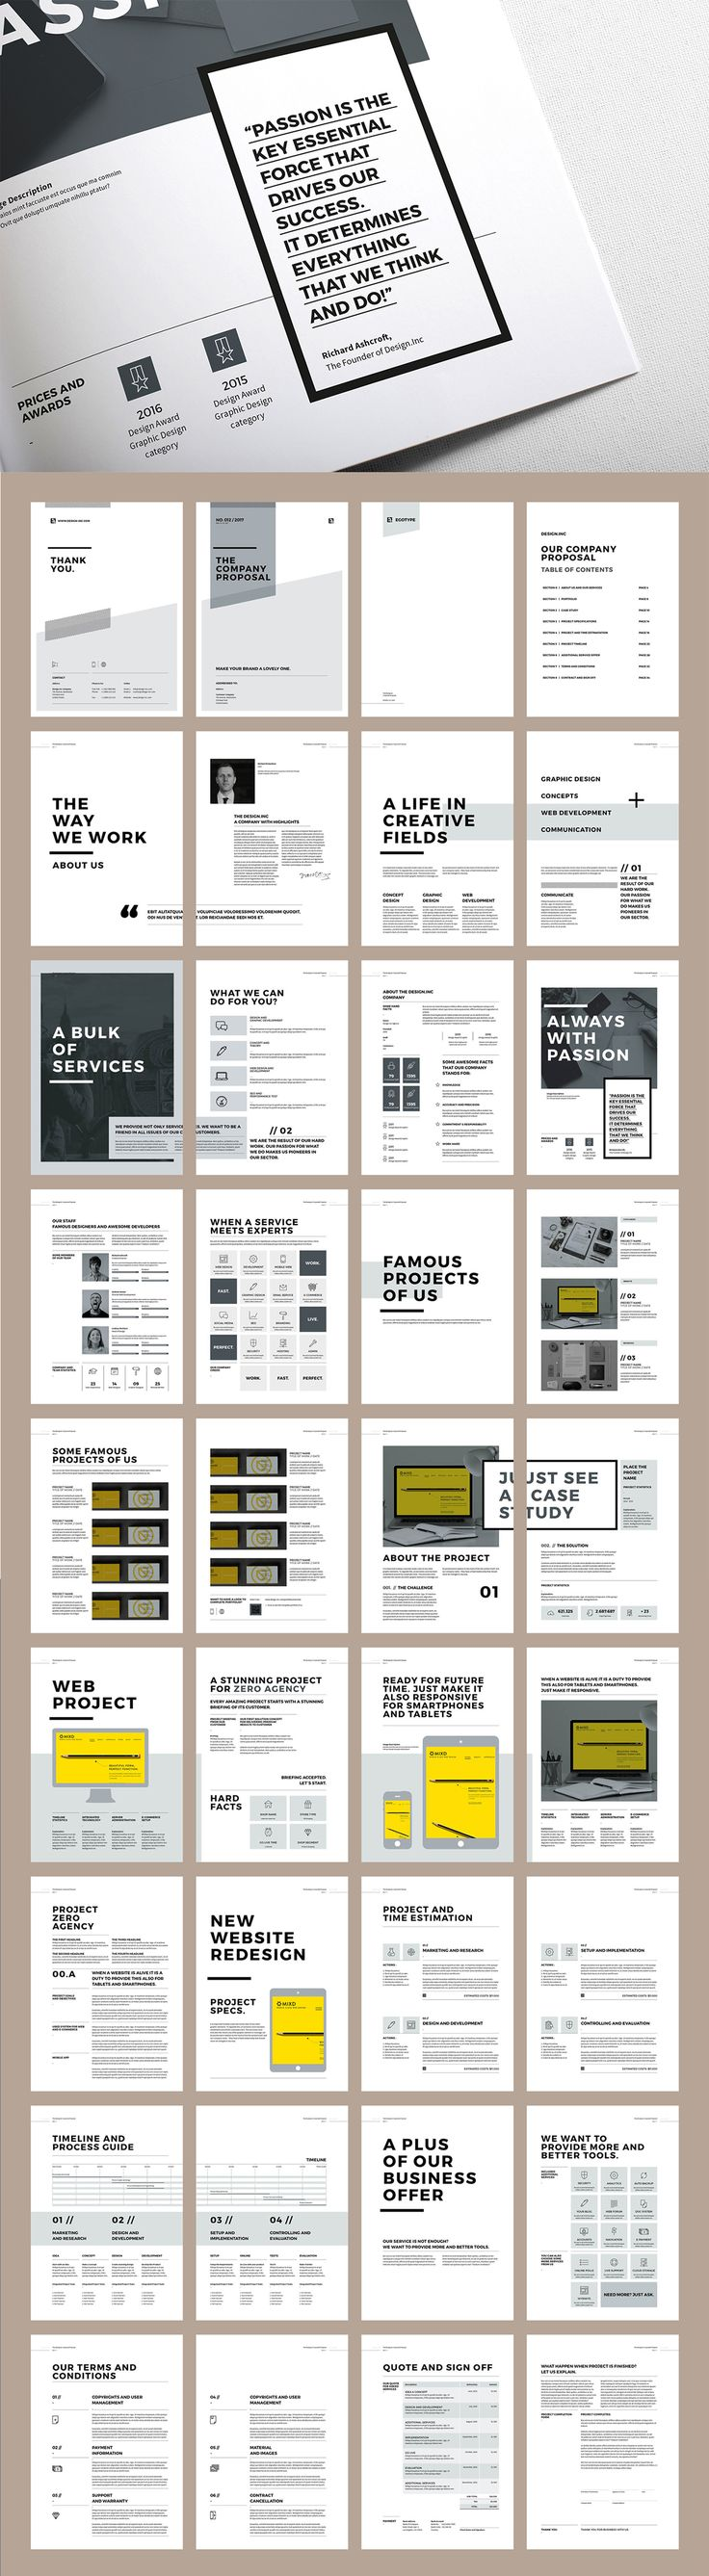 Proposal And Portfolio TemplateMinimal And Professional Proposal Brochure  Template For Creative Businesses, Created In Adobe  Ms Word Proposal Template